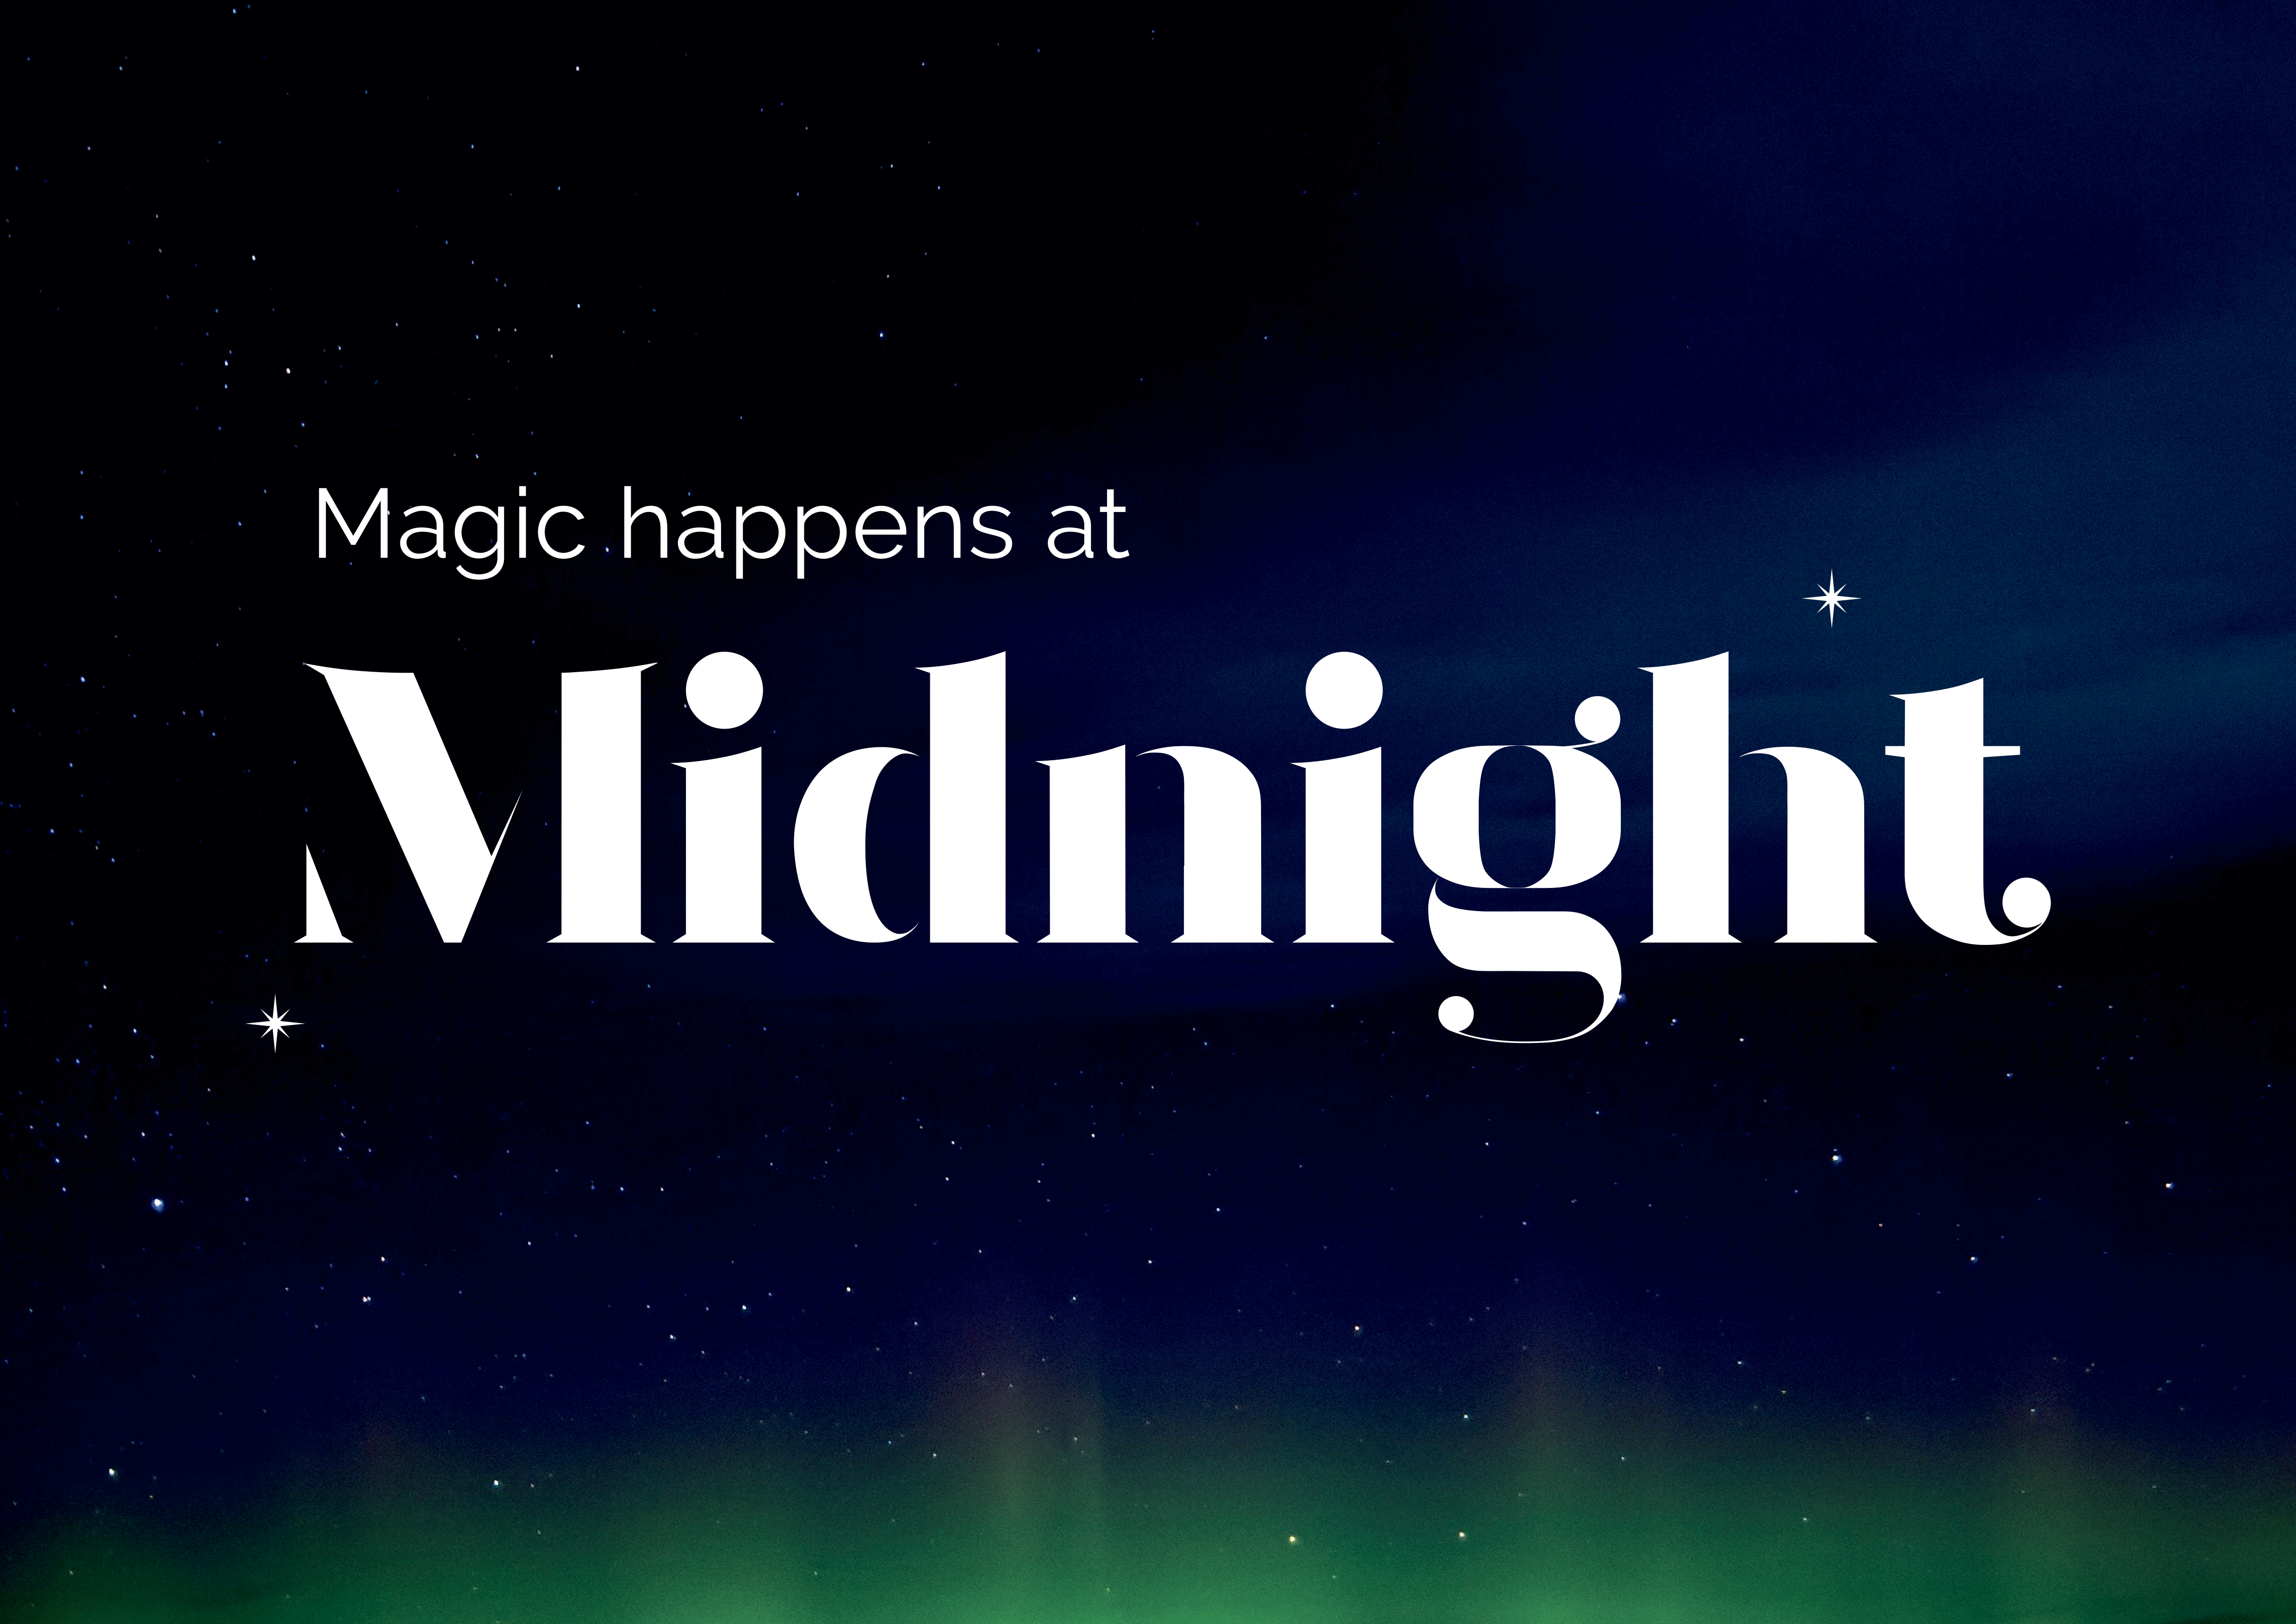 Cover image: Midnight Logo